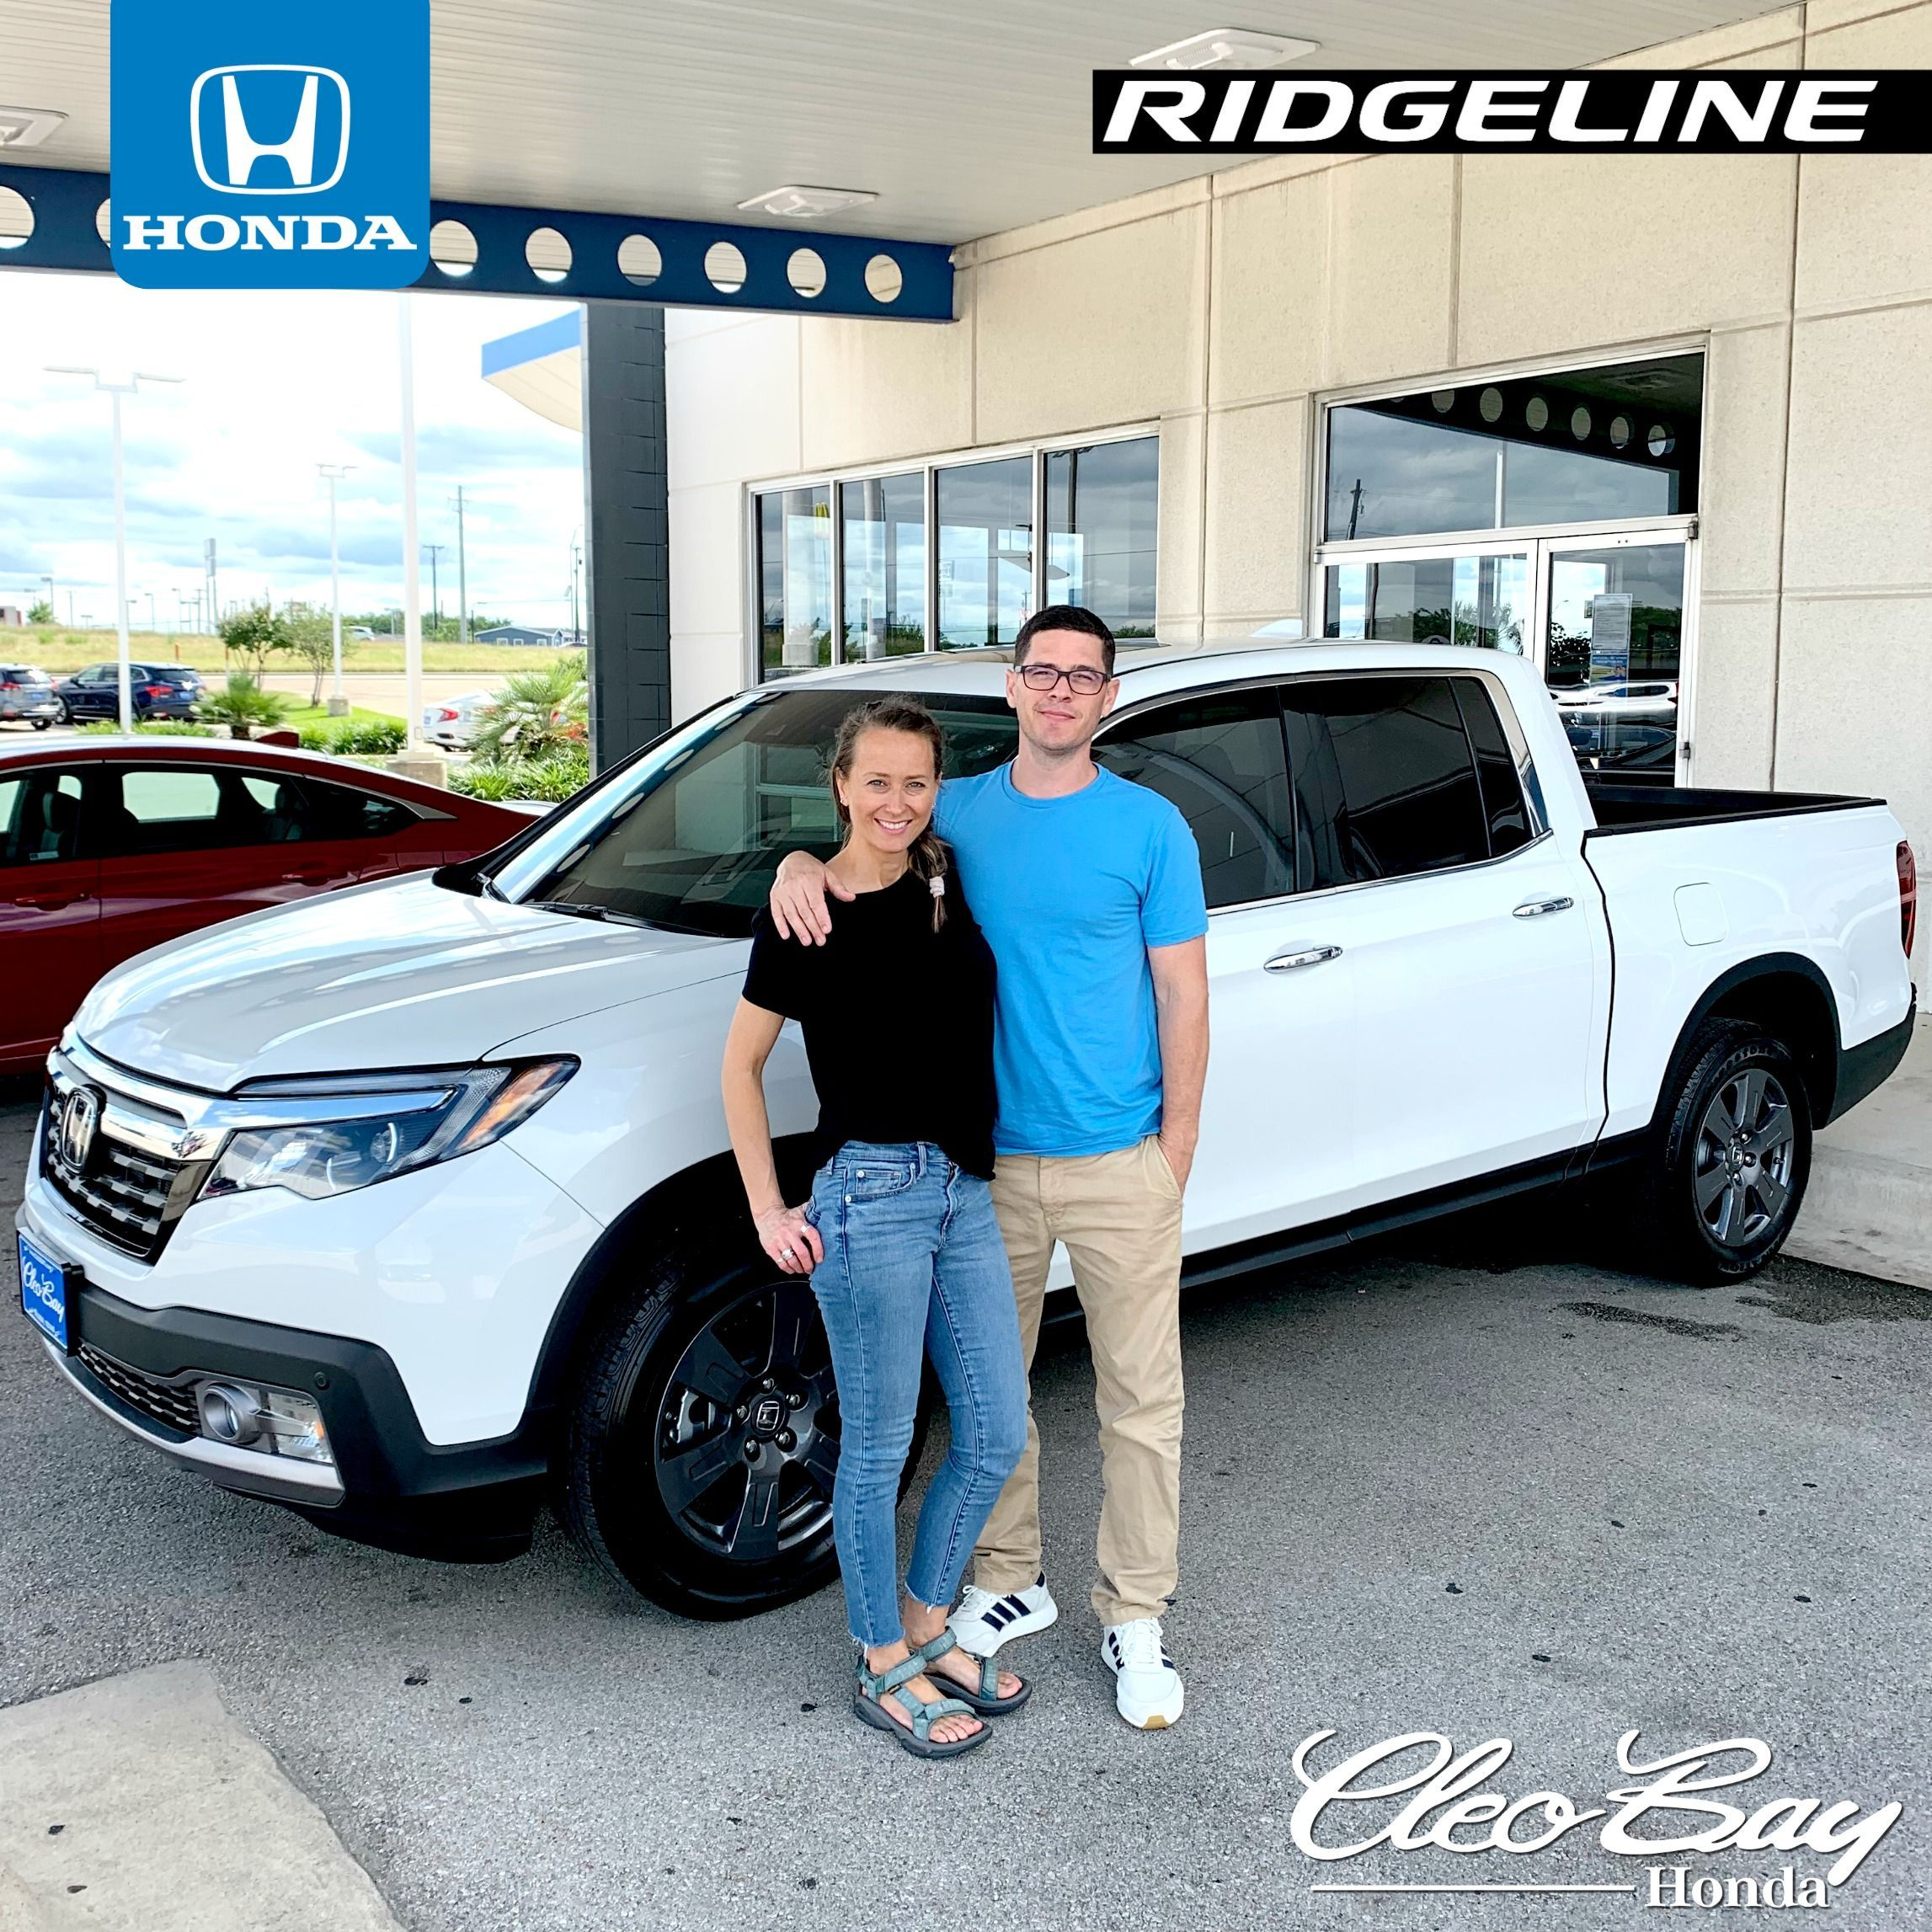 Congratulations George Nancy On Your Recent Purchase Of A New 2020 Honda Ridgeline Rtl E Click The Pic To See Our Current In In 2020 Honda Ridgeline New Honda Honda